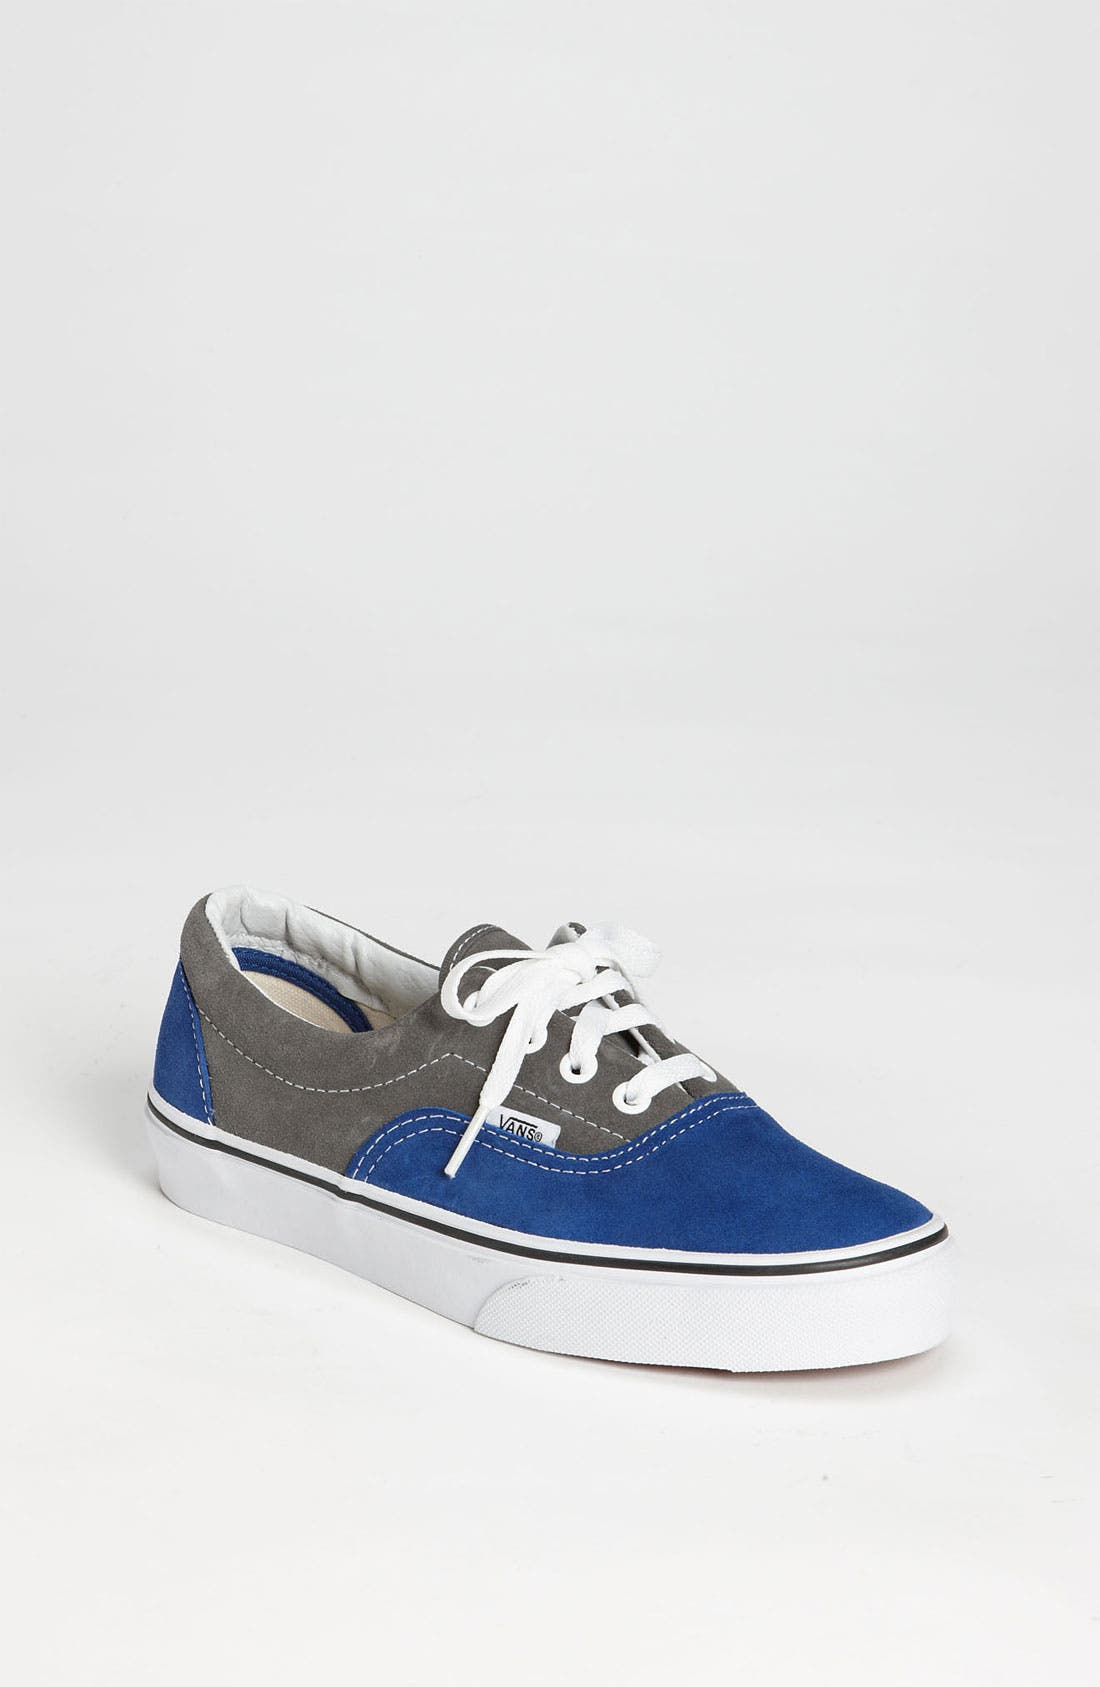 Alternate Image 1 Selected - Vans 'Era' Sneaker (Toddler, Little Kid & Big Kid)